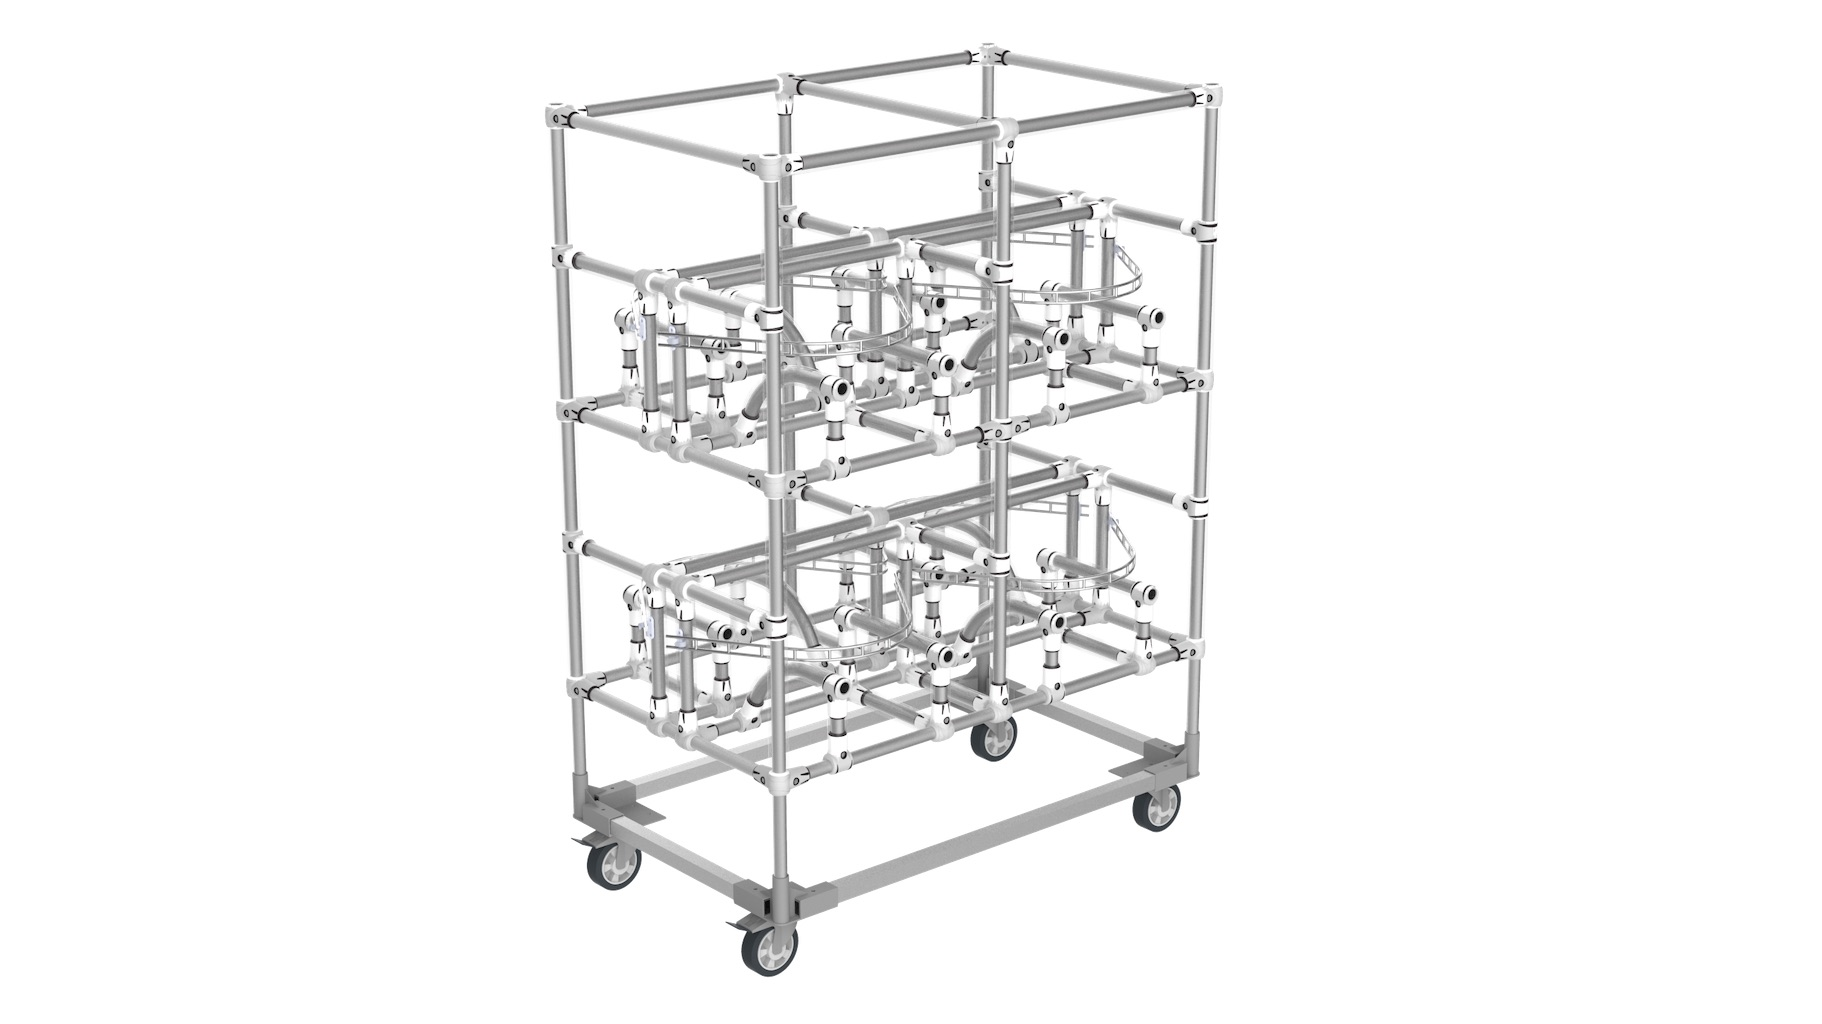 Aerospace - Storage trolley for supplying air intake parts to the production area.